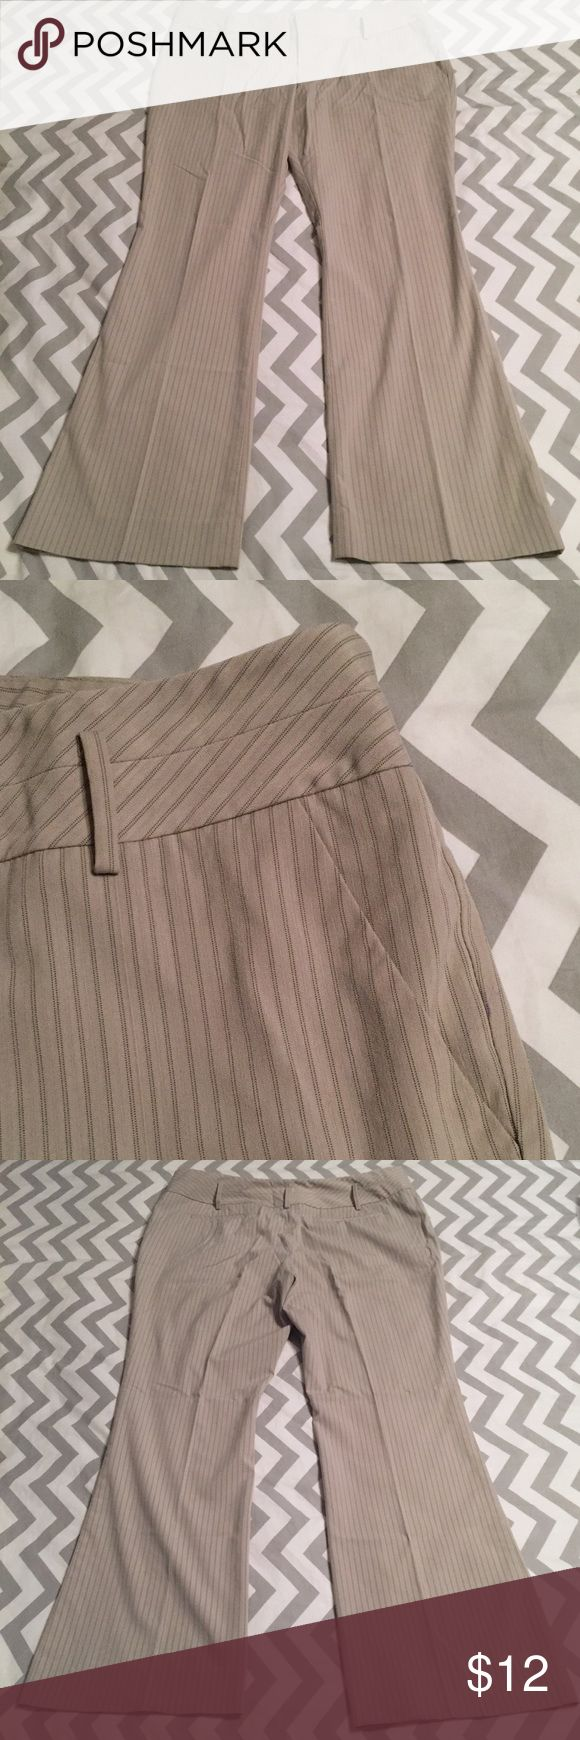 Mossimo Pinstripe Pants Khaki colored dress pants with brown pinstripe running through. Side slant pockets and back welt pockets. Wide waist loops to accommodate any size belt. Waist is 20, inseam 31. These are in EUC. Mossimo Supply Co. Pants Trousers